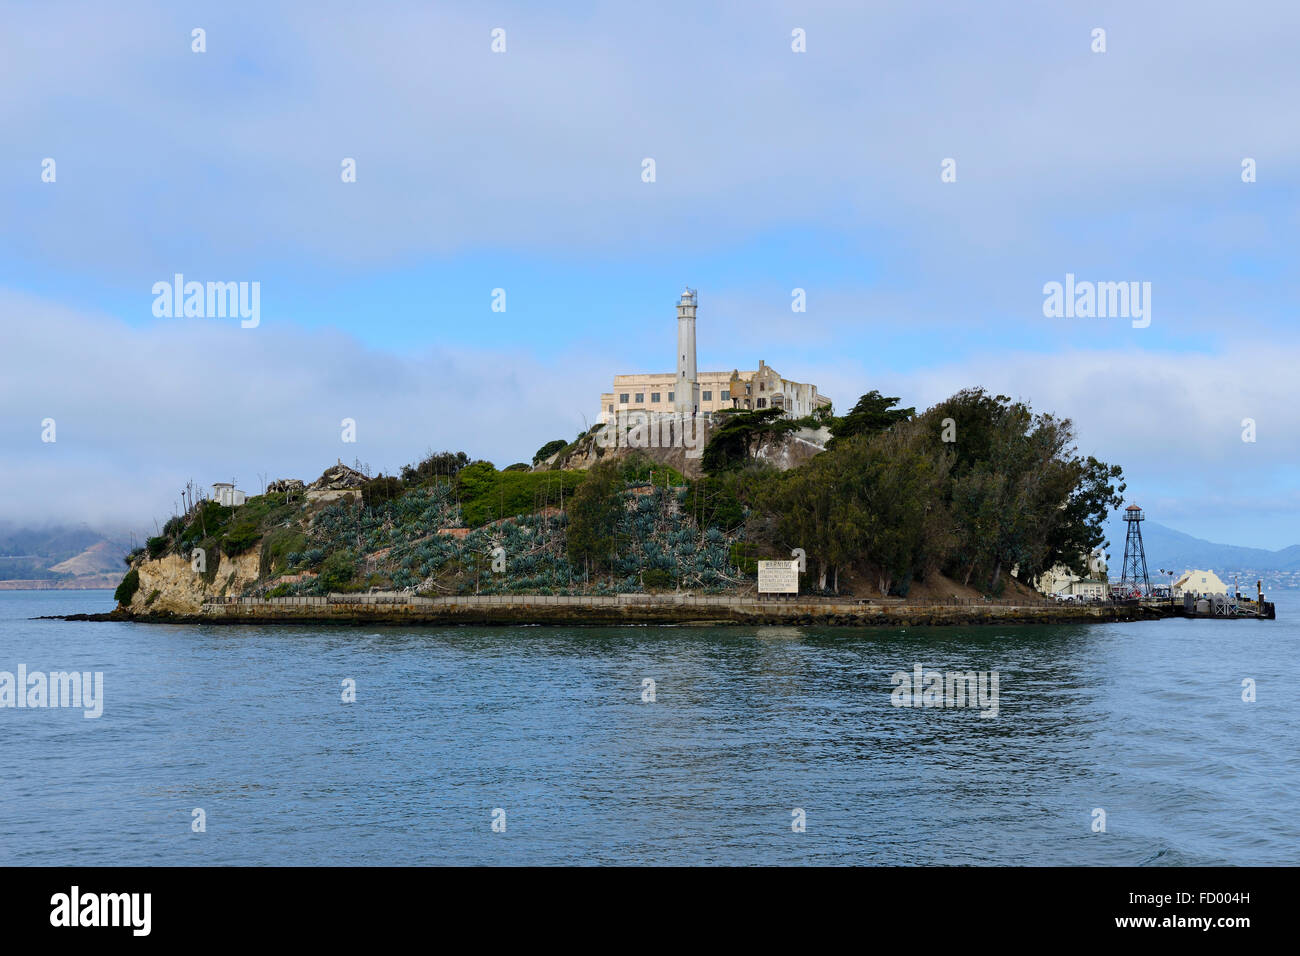 Departing Alcatraz Island, San Francisco, California, USA - Stock Image